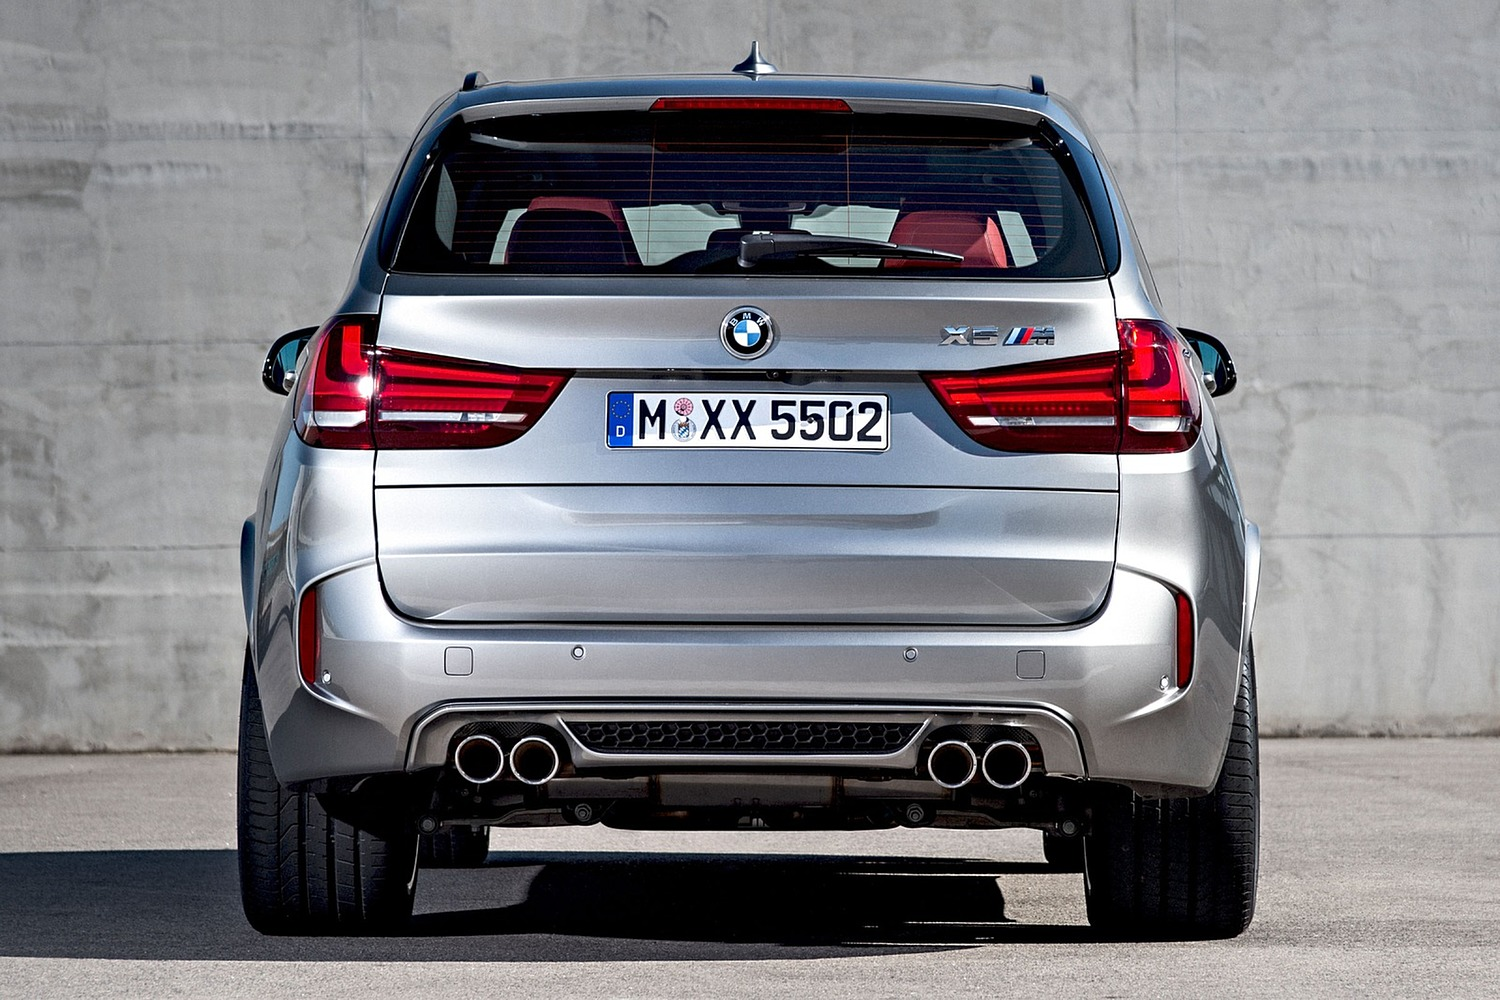 BMW X5 M 4dr SUV Exterior (2016 model year shown)